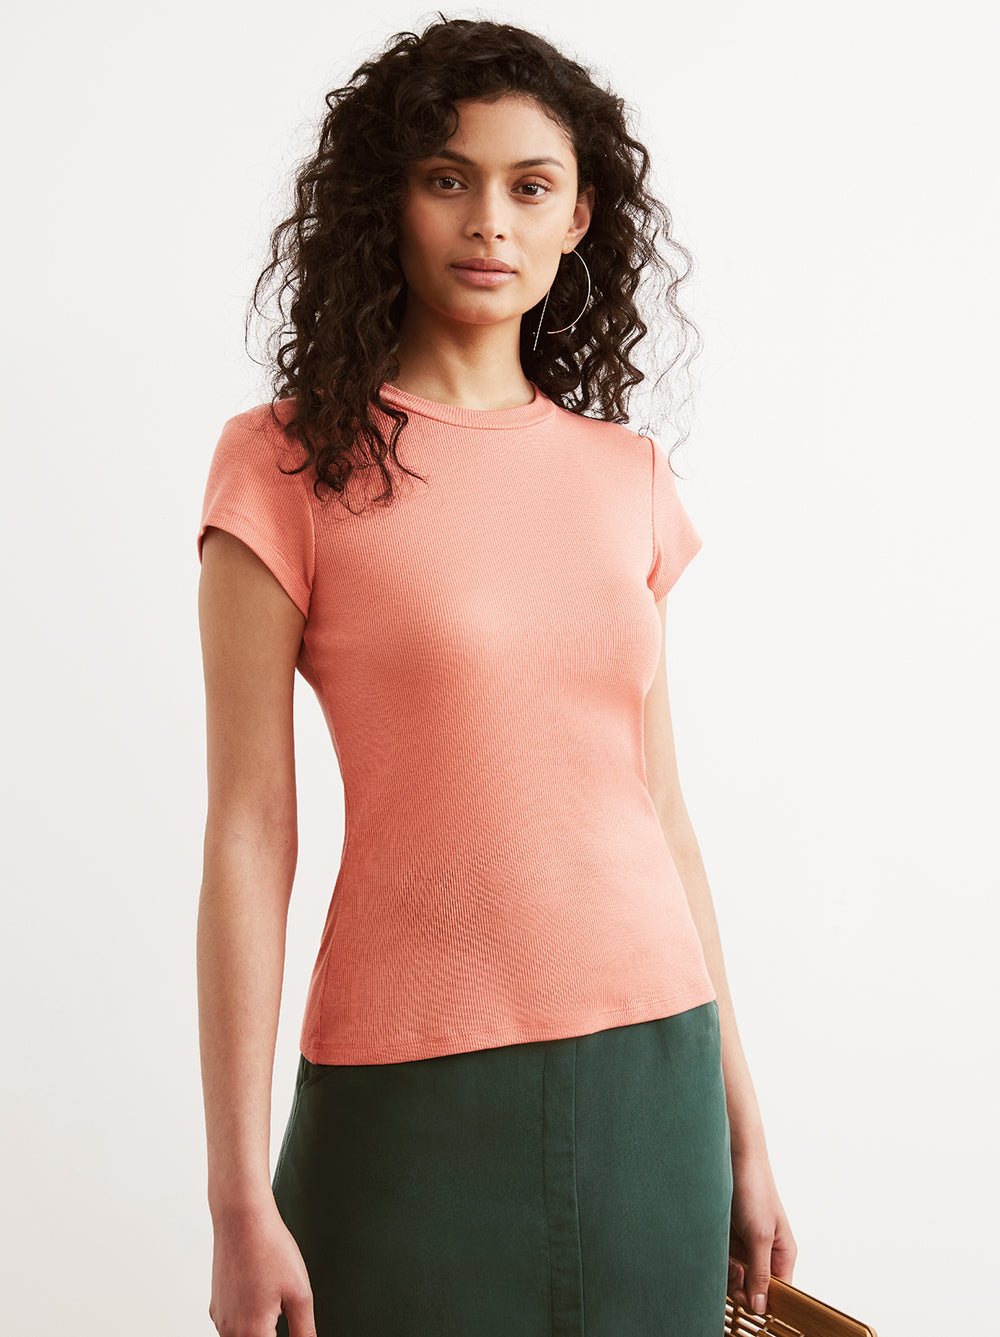 Rumi Orange Ribbed Crew Neck T-Shirt by KITRI Studio